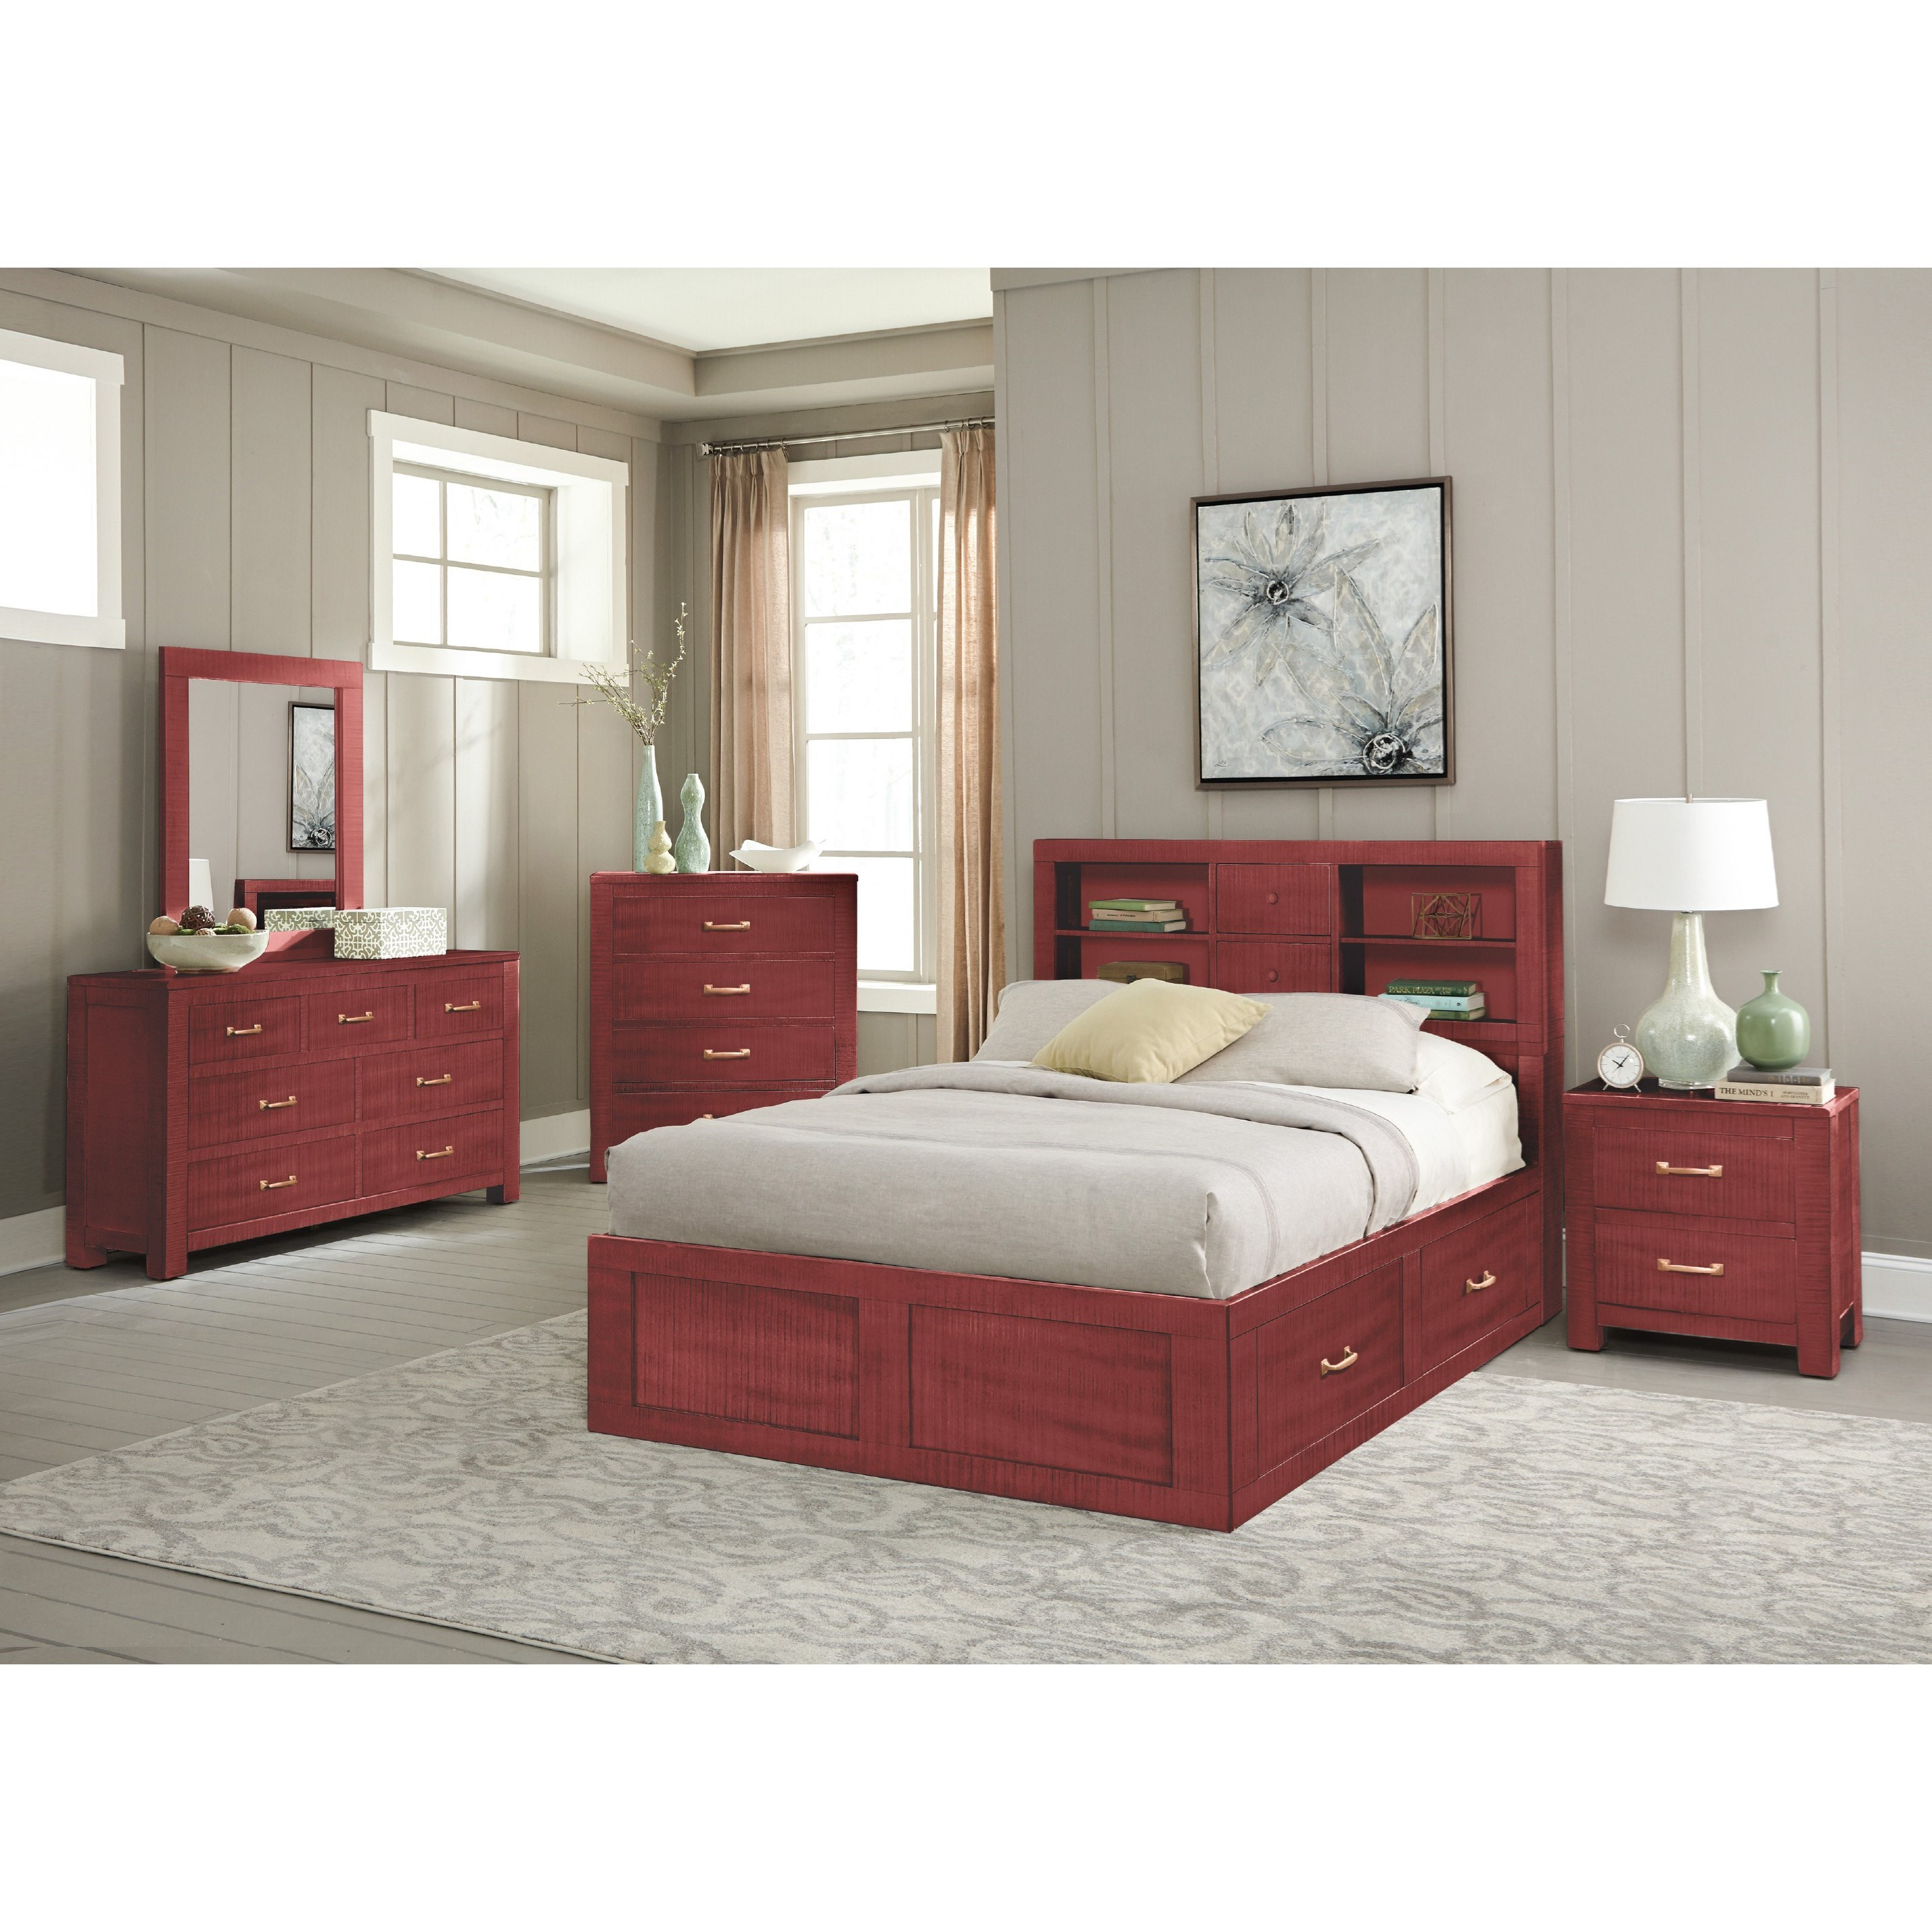 2319 Twin Bedroom Group by Sunny Designs at Sparks HomeStore